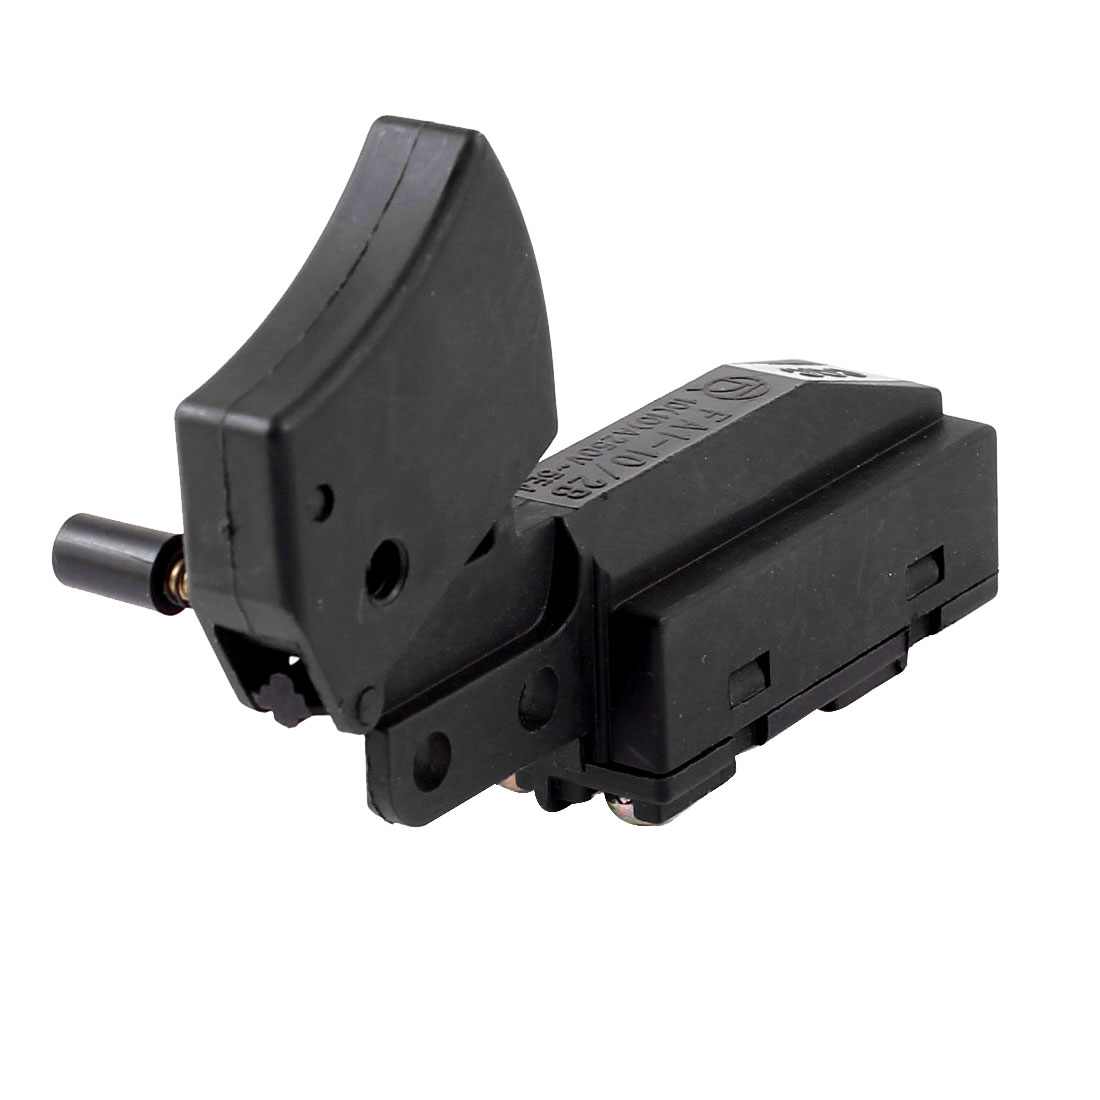 Cutting Machine Replacements Parts Momentary DPST Electric Tool Trigger Switch AC 250V 10A